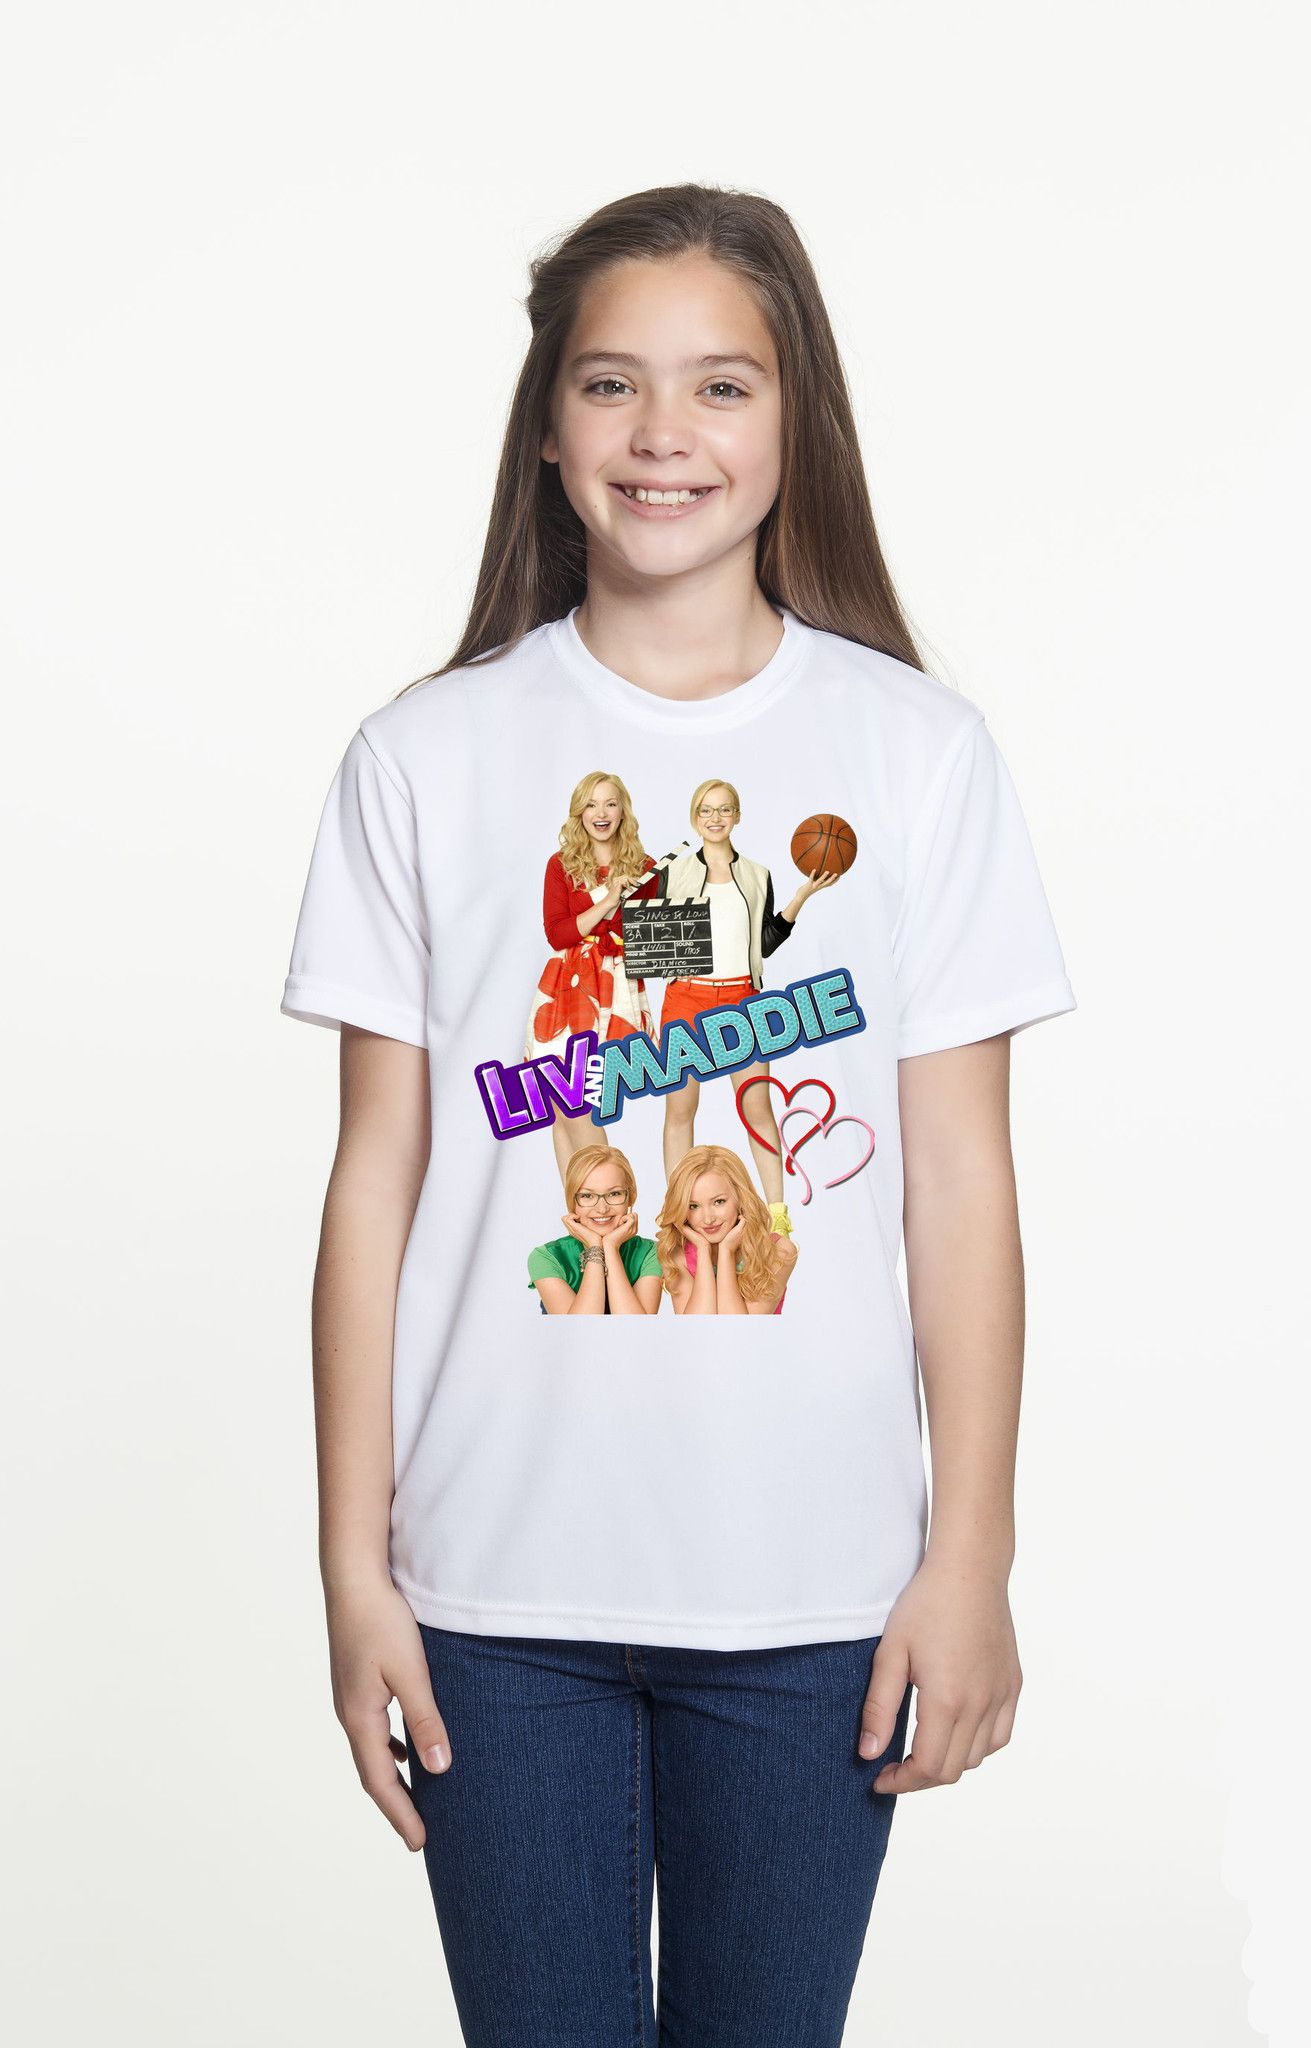 Printable coloring pages liv and maddie - Brand New T Shirt Disney Liv And Maddie Tv Show